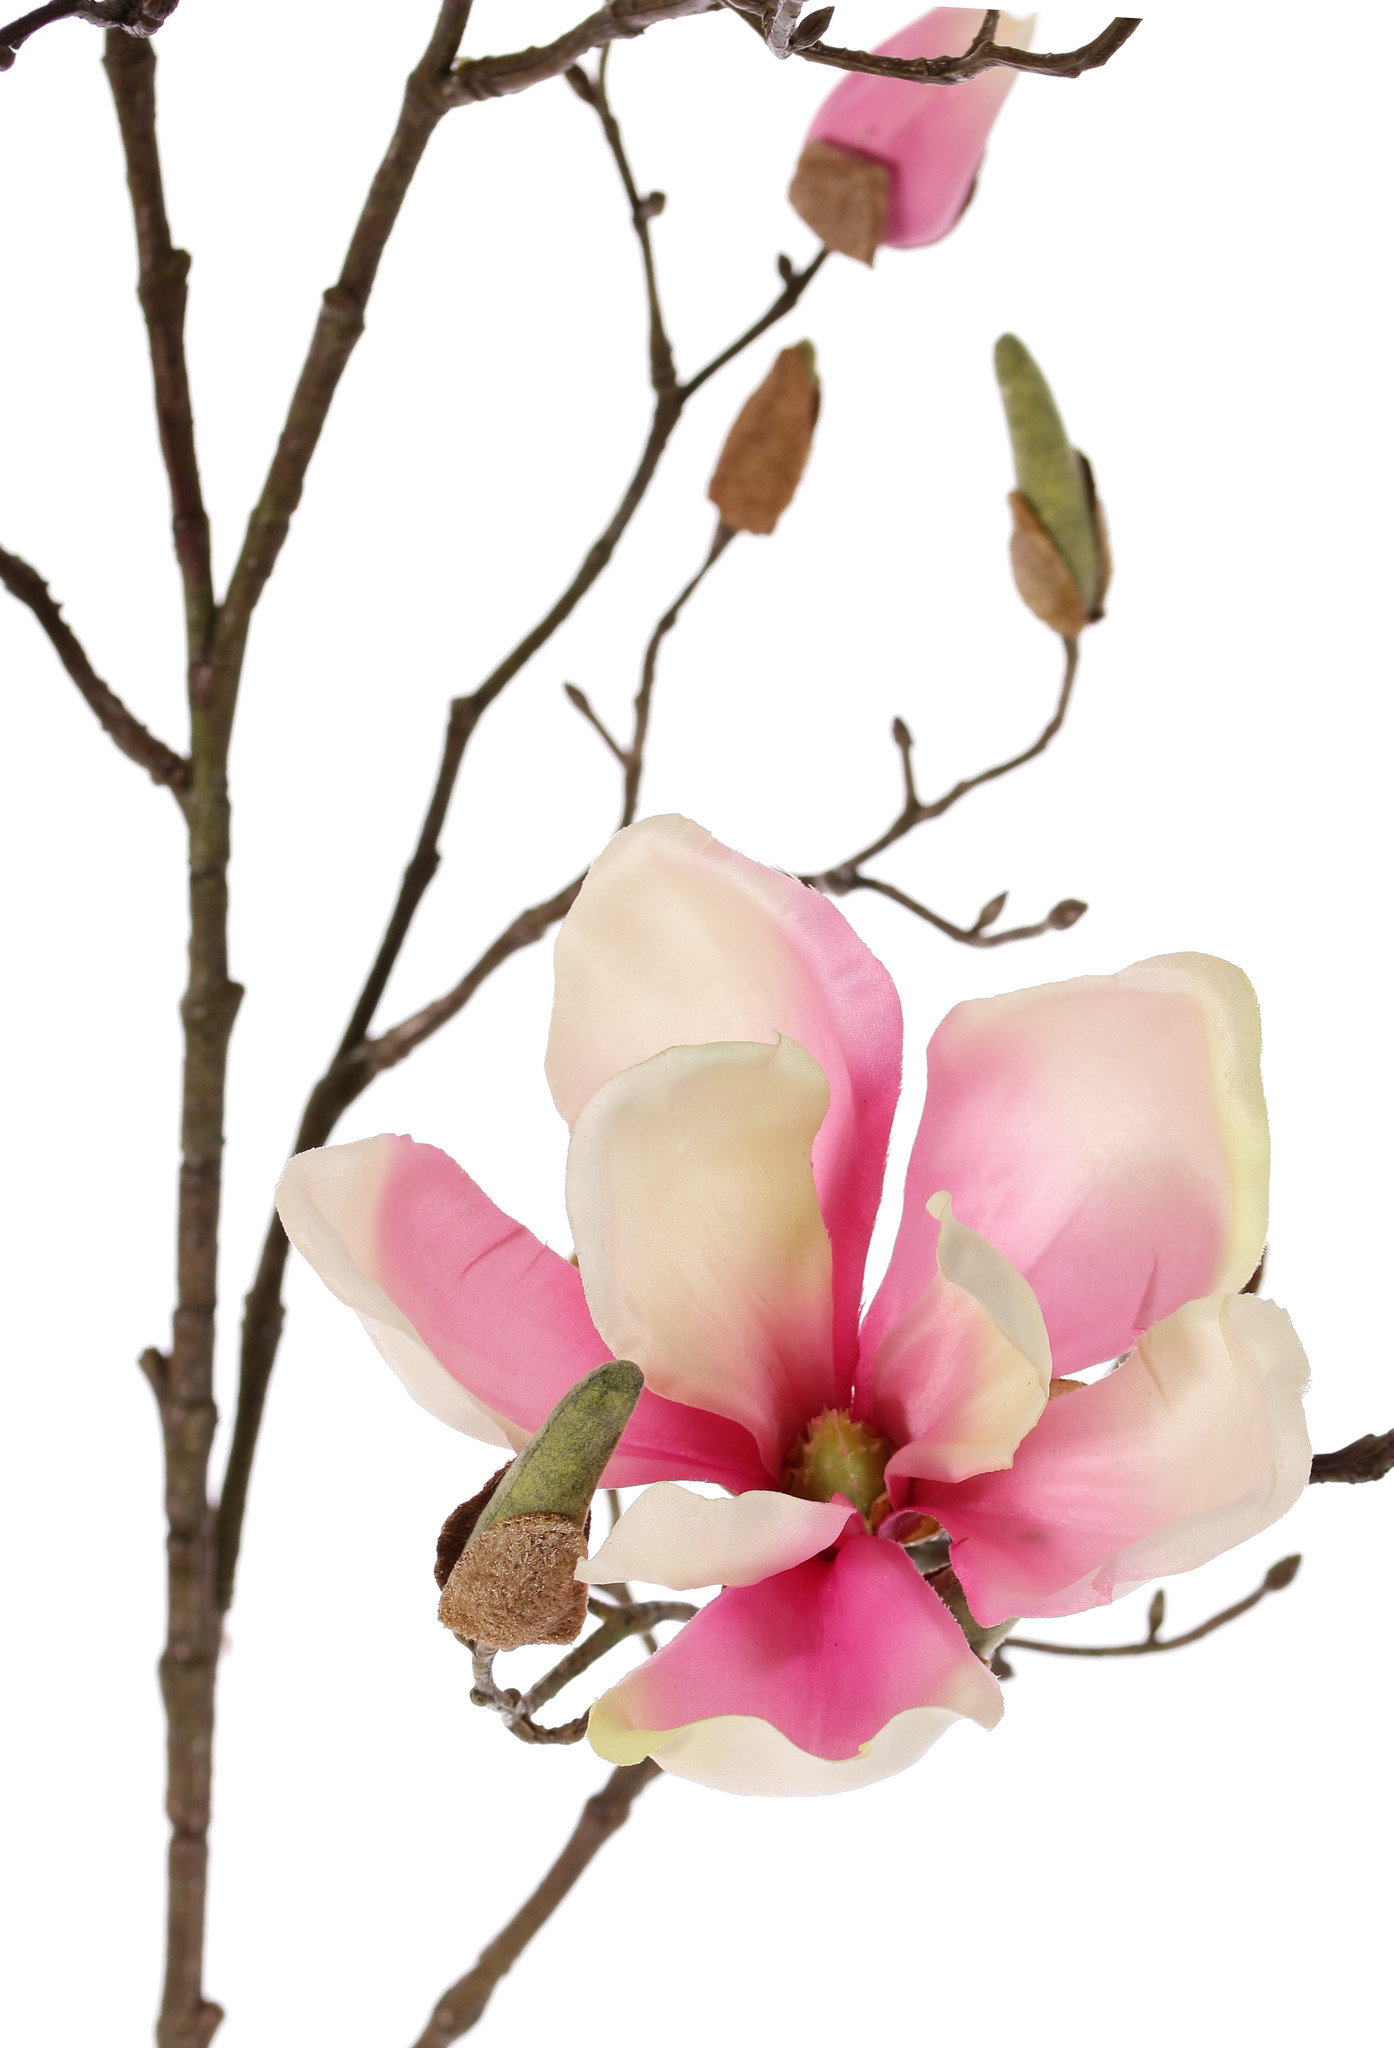 Magnolia branch with 4 flowers, 22 buds, 107cm